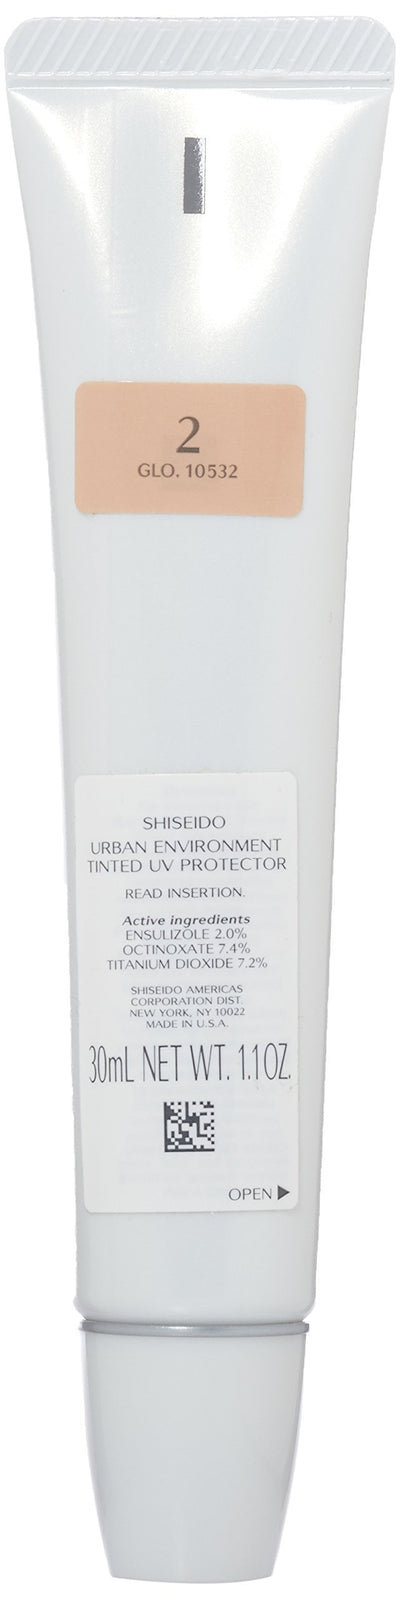 Shiseido Urban Environment Tinted UV SPF 43 Protector Broad Spectrum for Face, No. 2, 1.10 Ounce - Glumech